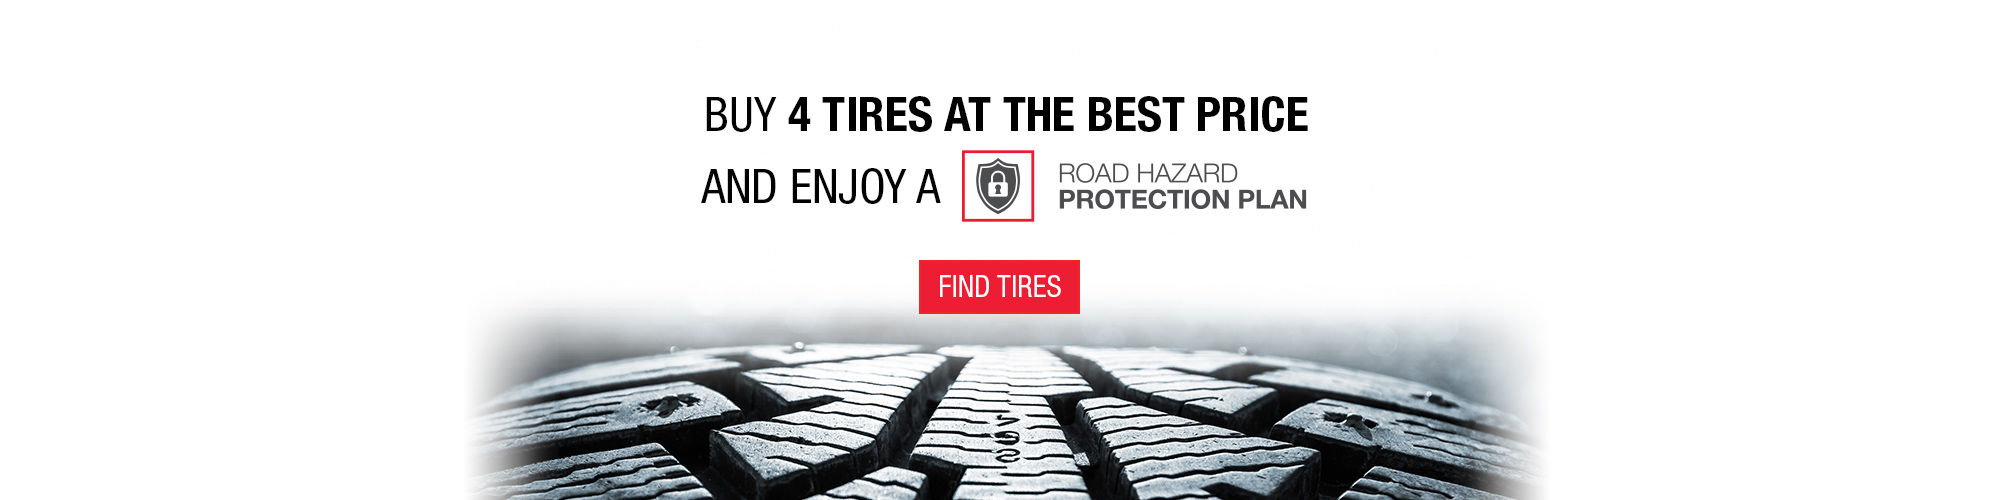 Find your tires